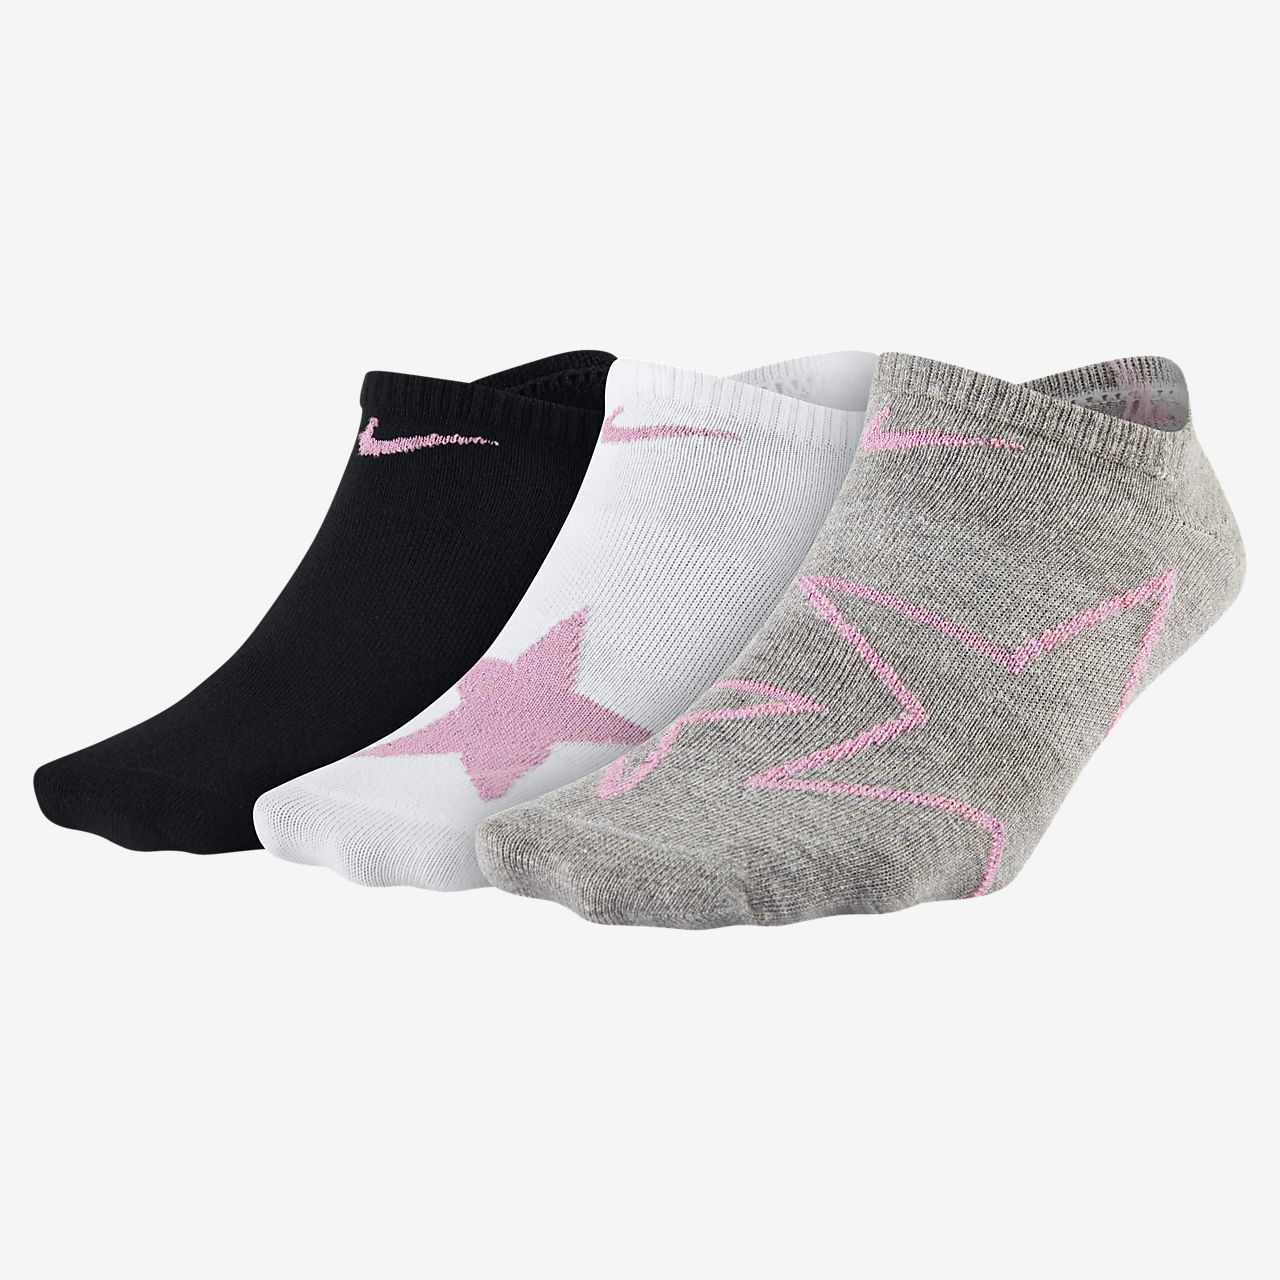 Nike Everyday Big Kids' Graphic No-Show Socks (3 Pairs)